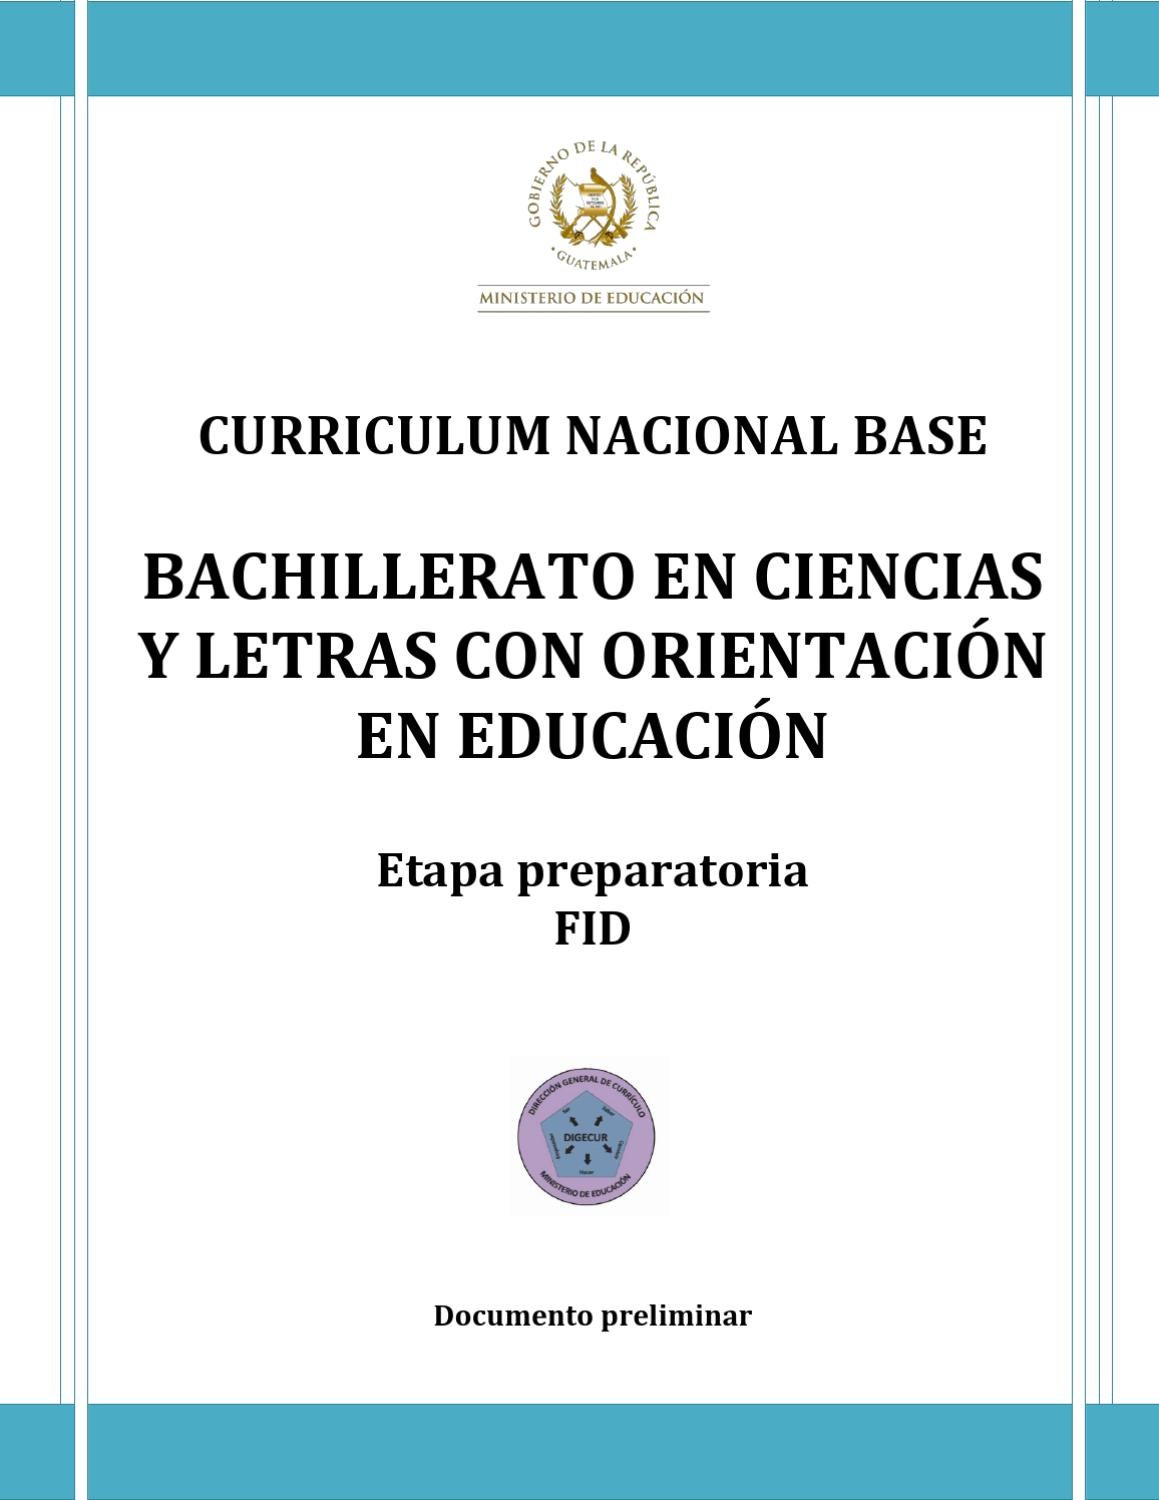 CURRICULUM NACIONAL BASE by Julio Herrera - issuu